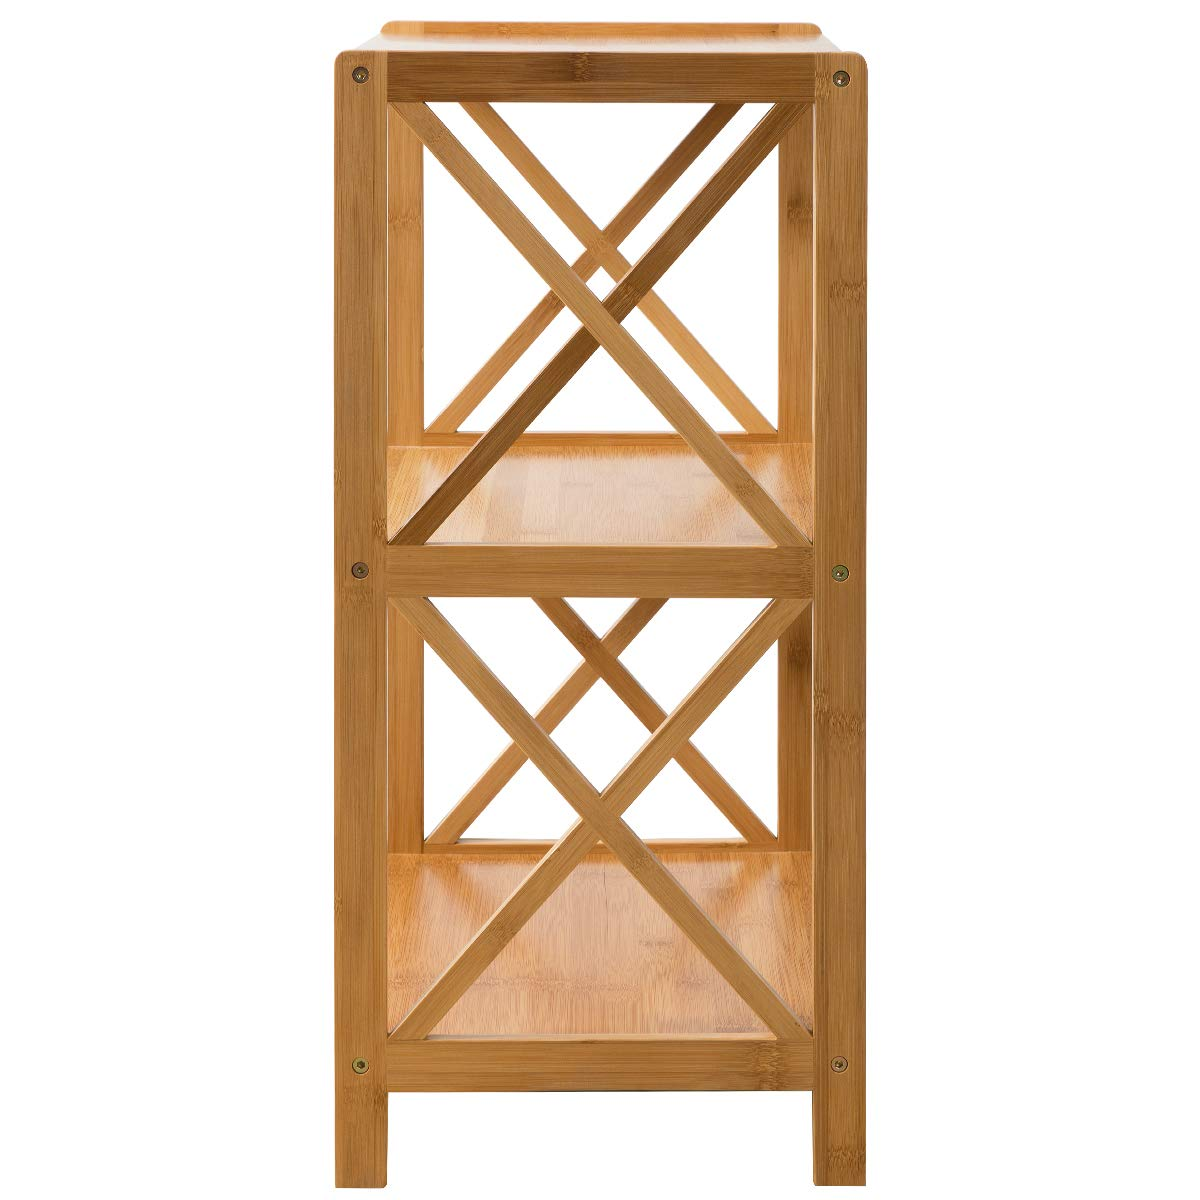 HollyHOME 3 Tier 100% Bamboo Bathroom Kitchen Living Room Shelf, Plant and Flowers Stand Utility Storage Shelf,Multifunctional Storage Rack Shelving Unit End Table, 16.38''x11.63''x25.51'' by HollyHOME (Image #9)